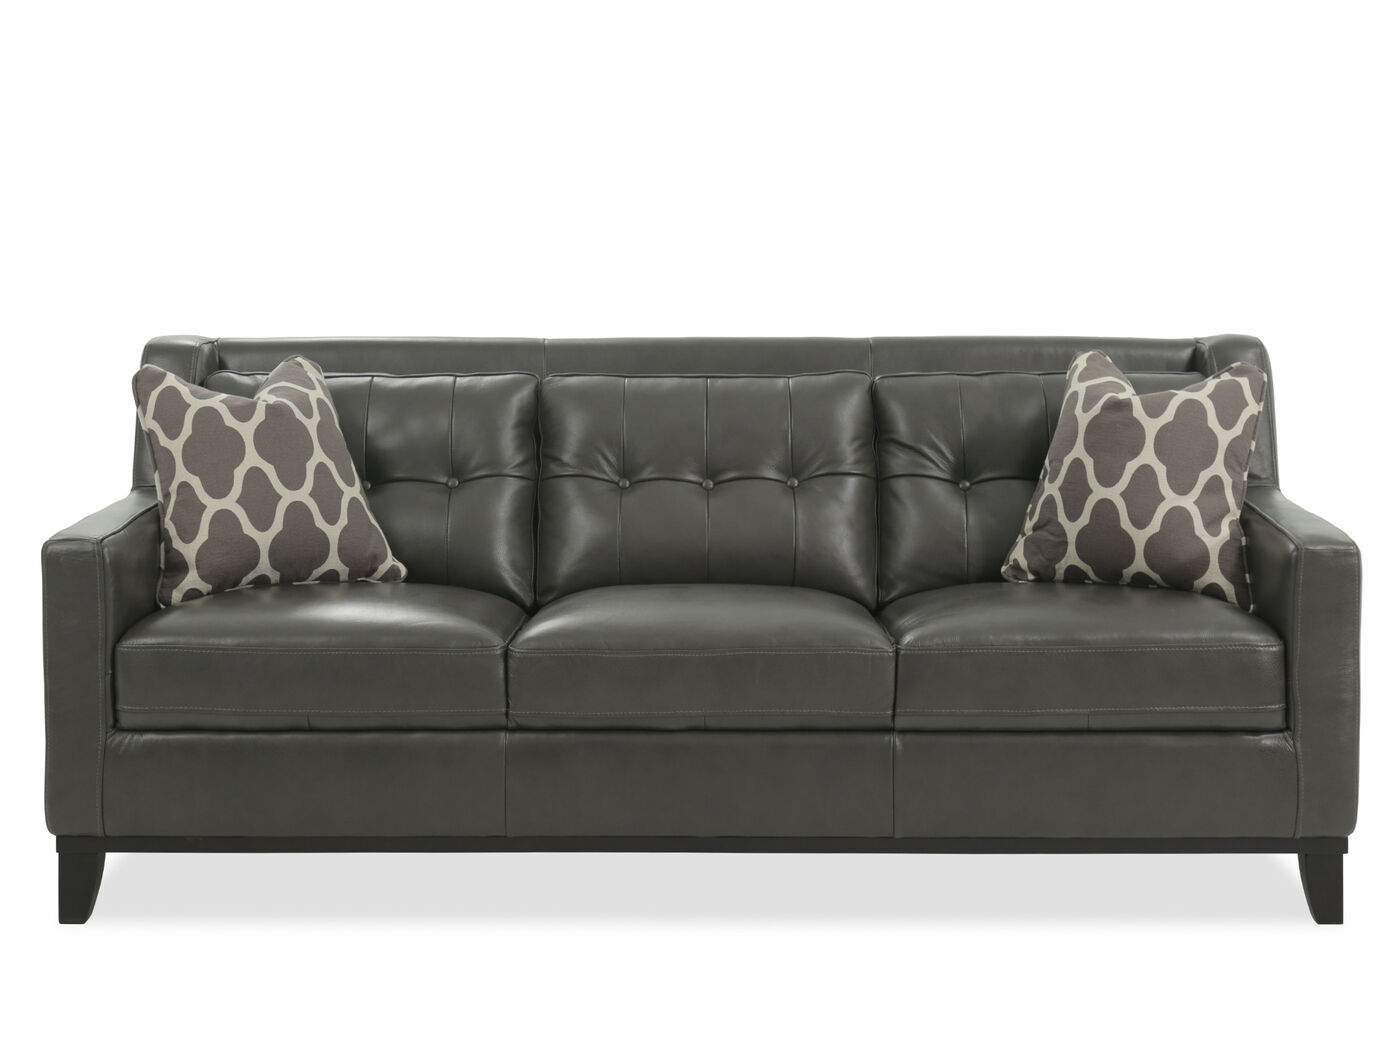 Button Tufted Leather Sofa In Gunmetal Mathis Brothers Furniture ~ Tufted Leather Sofa Bed